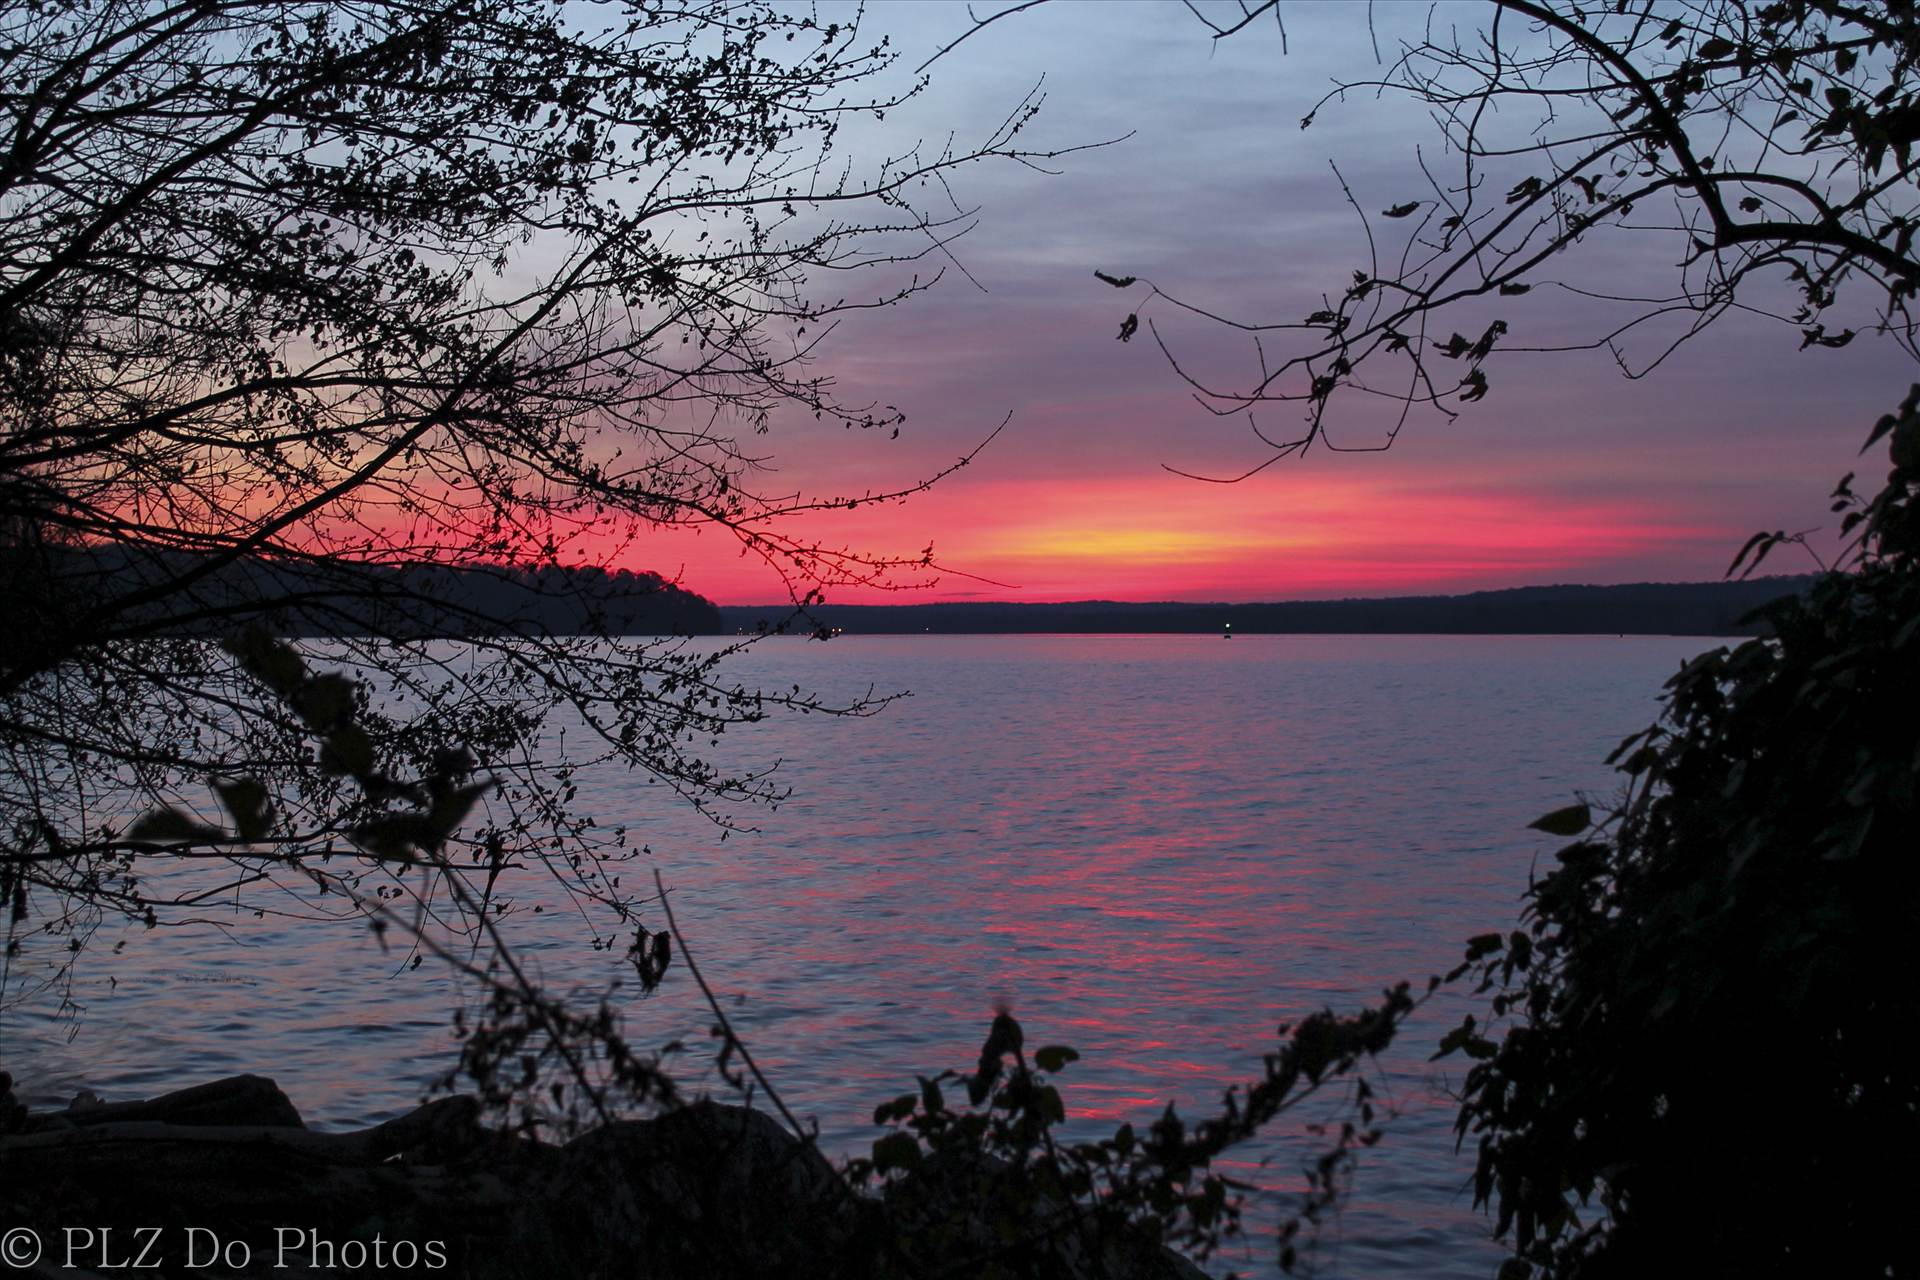 SUNRISE OVER THE POTOMAC - Sunrise over the Potomac in the fall. by Patricia Zyzyk